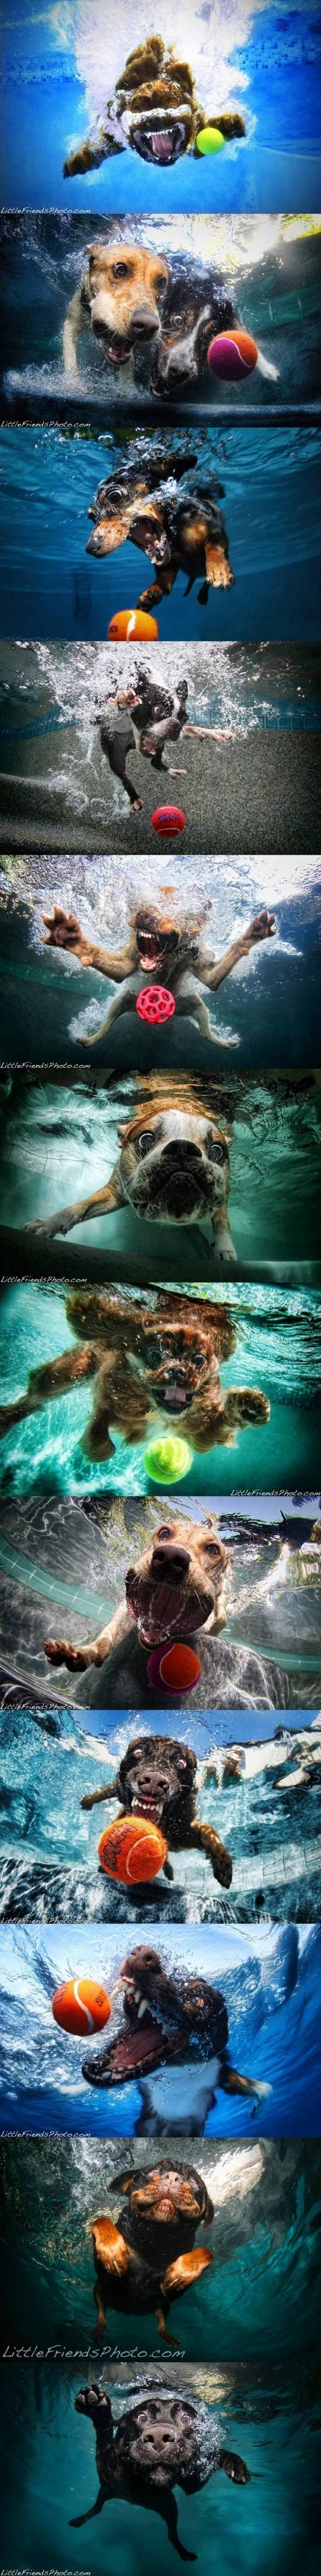 Too funny!: Doggie, Puppies, Funny Dogs, Silly Dogs, Dogs Photography, Underwater Dogs, Dogs Pictures, So Funny, Dogs Faces